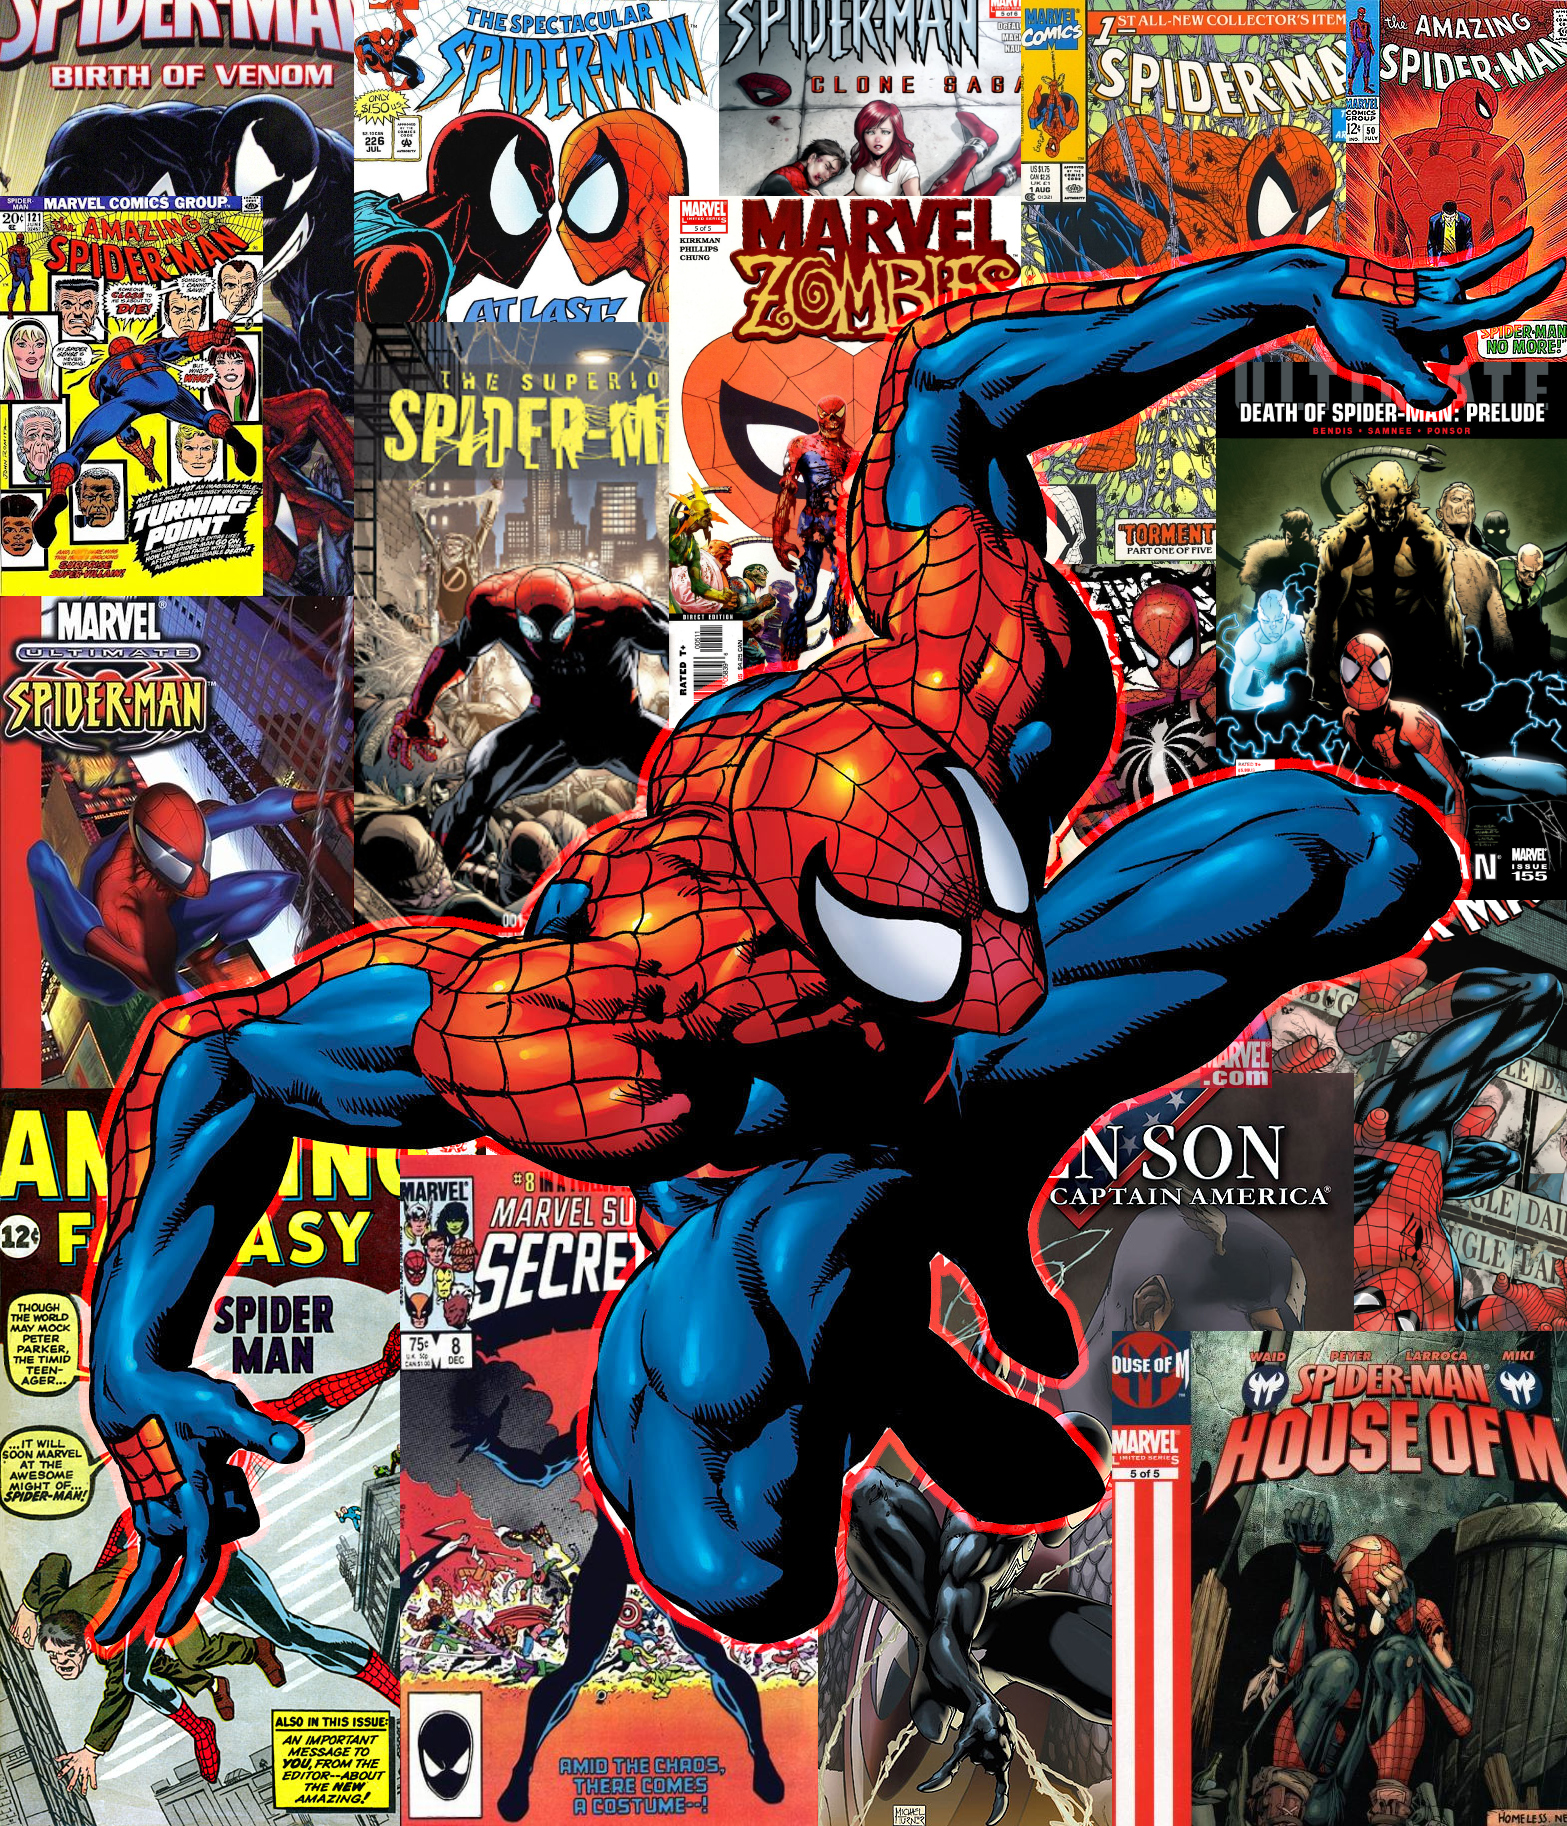 Comic Book Cover Background : Spider man comicbook cover collection wallpaper by